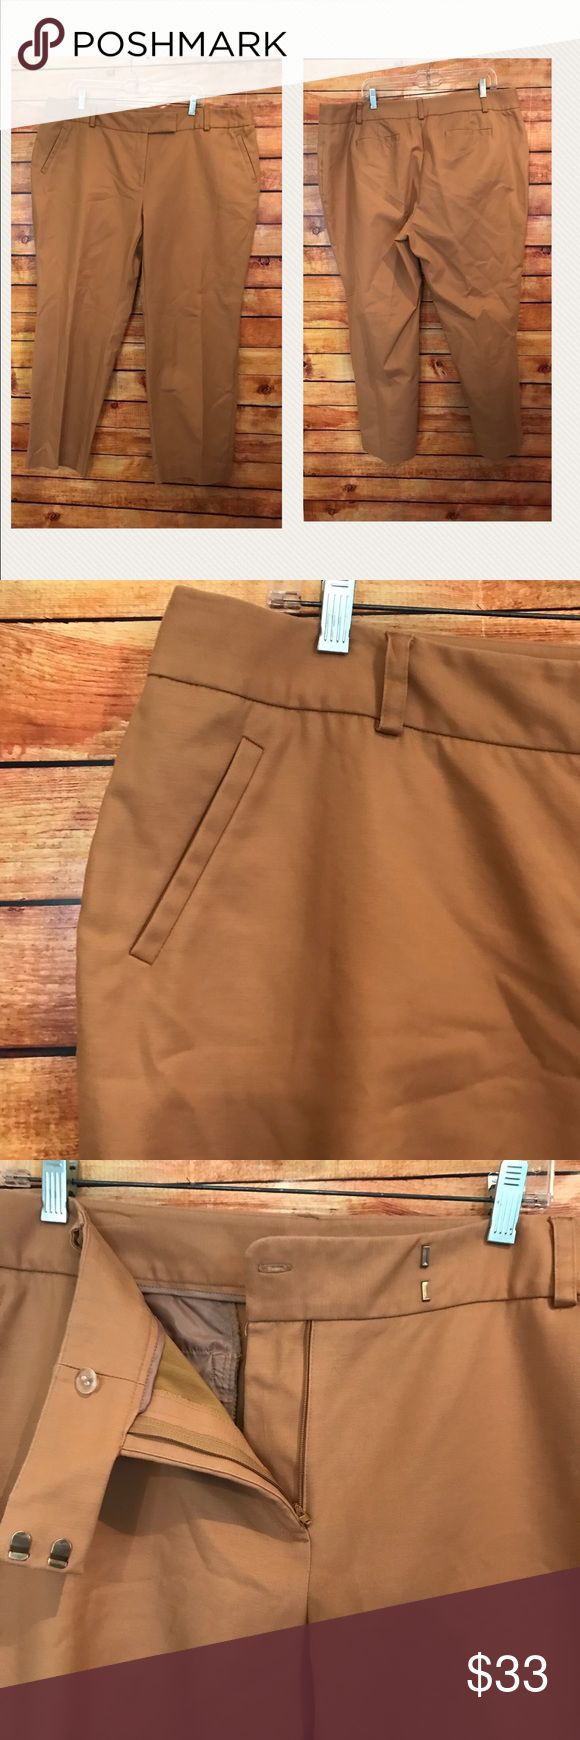 Charter Club Plus Size Khaki Pants, Size 20 In great condition! Charter Club Pants